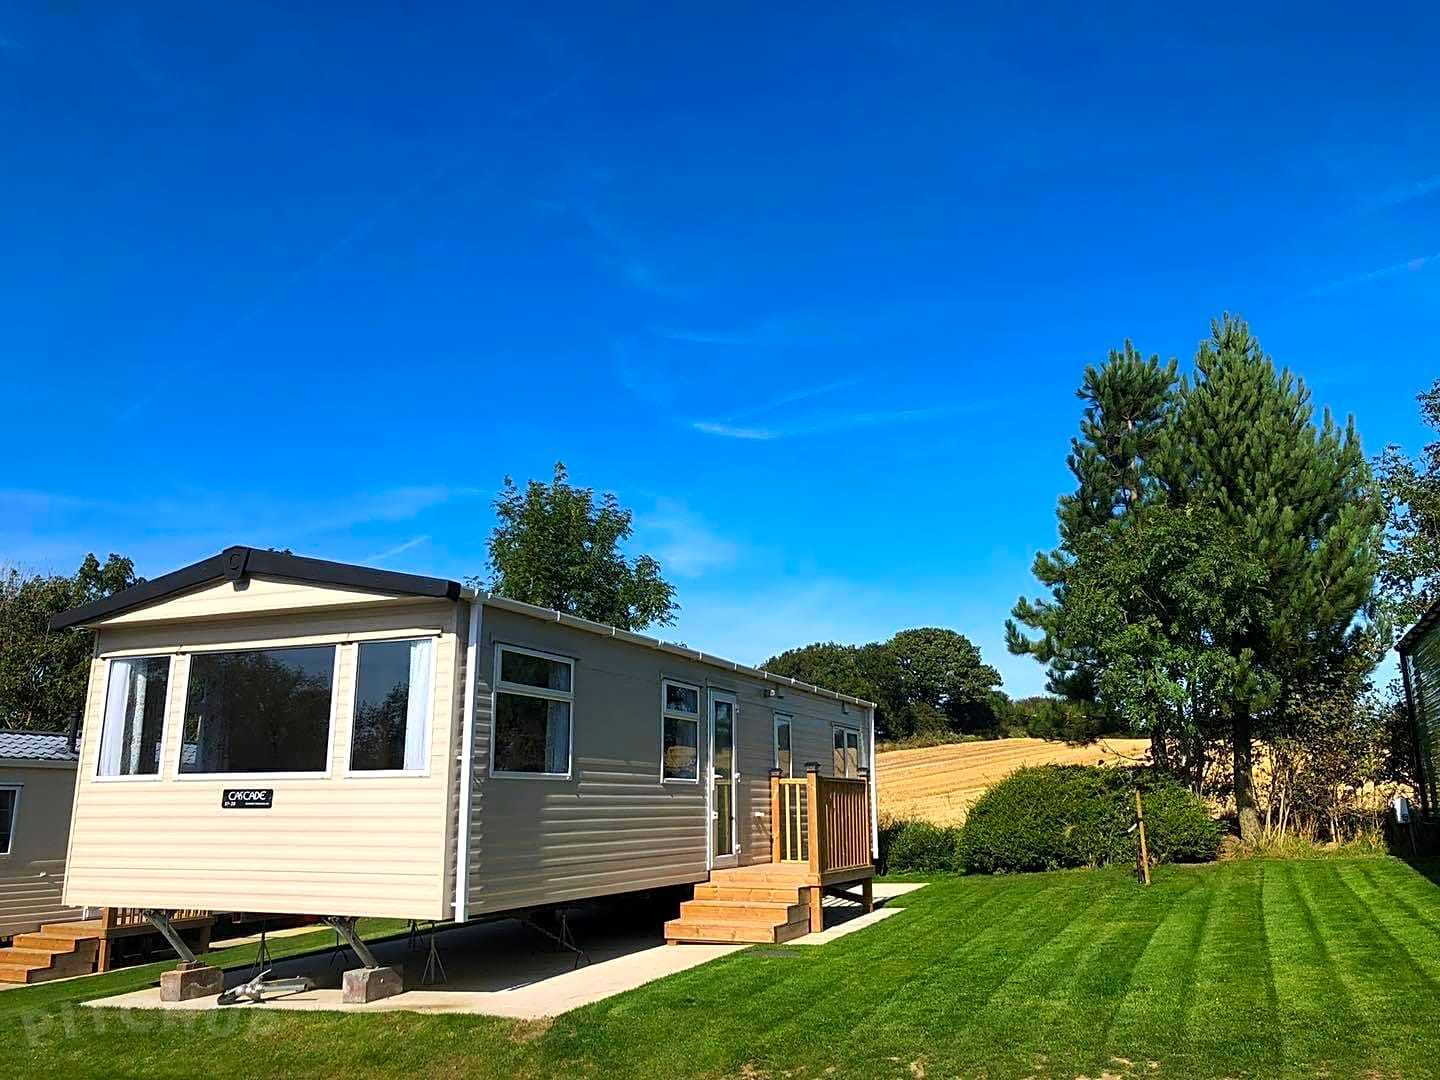 Strawberry Hill Farm Caravan and Camping Park, Co. Durham   Pitchup®